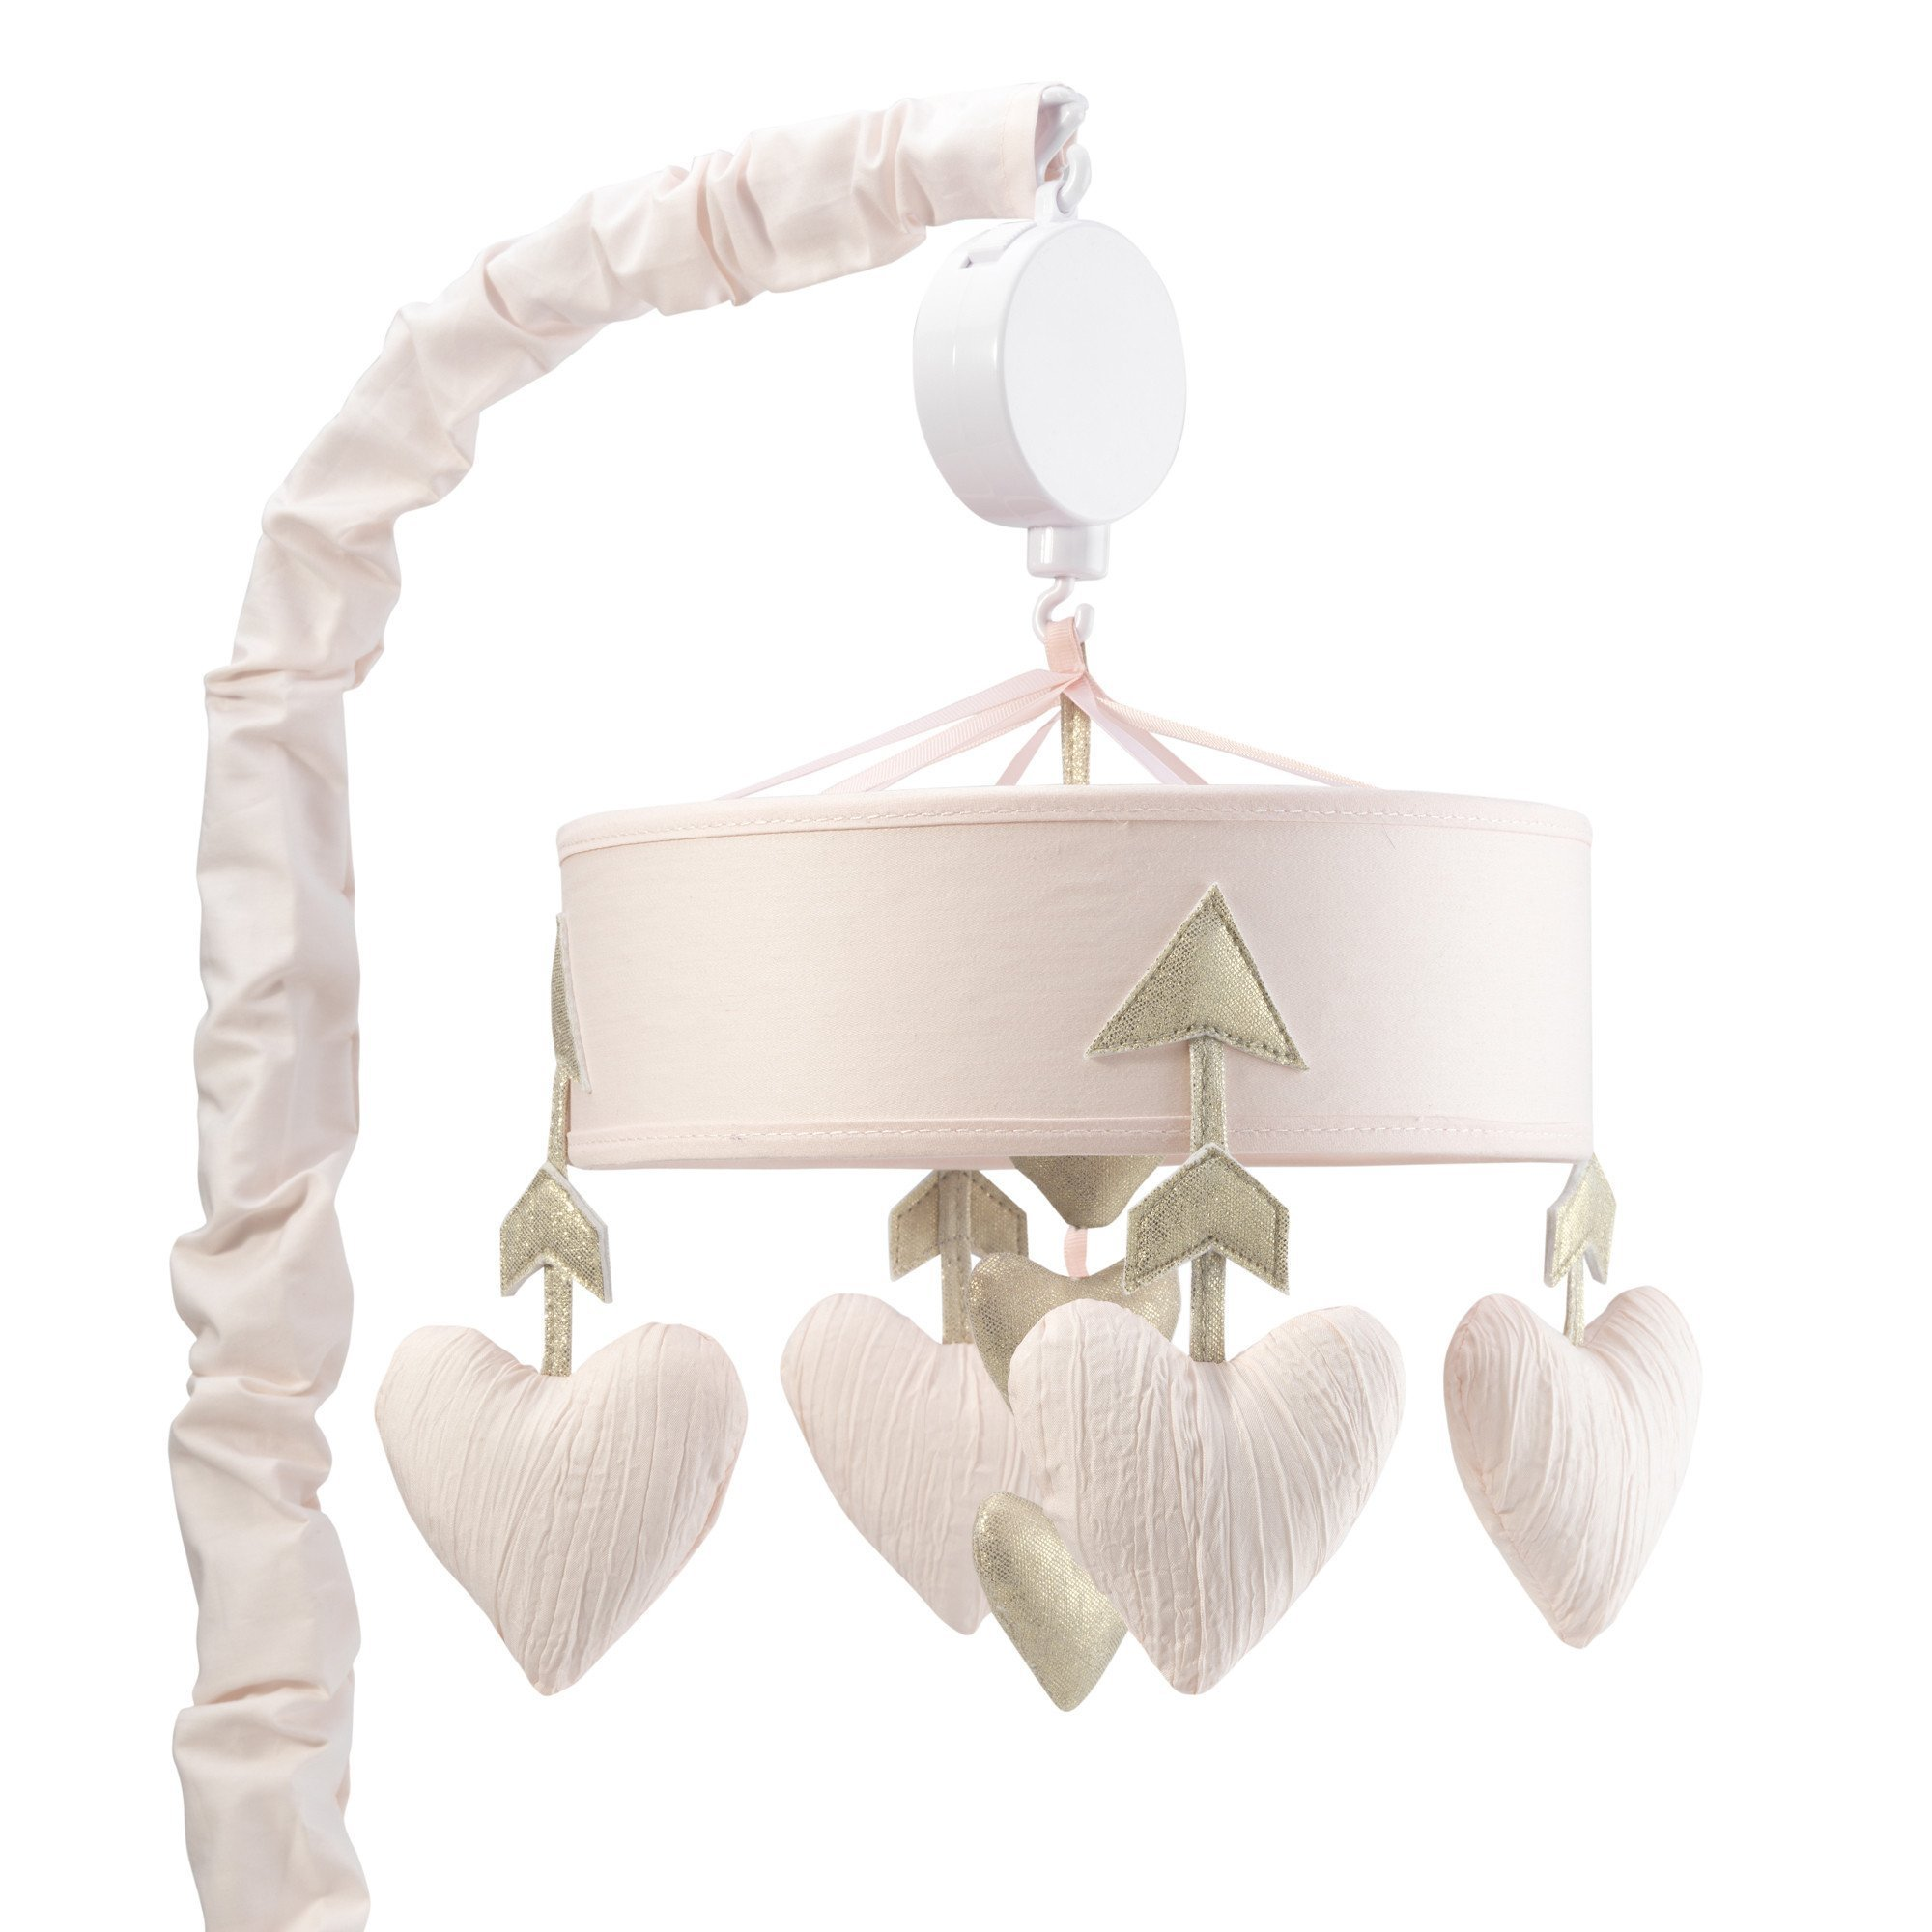 Lambs & Ivy Baby Love Musical Mobile Toy - Pink/Gold Hearts by Lambs & Ivy